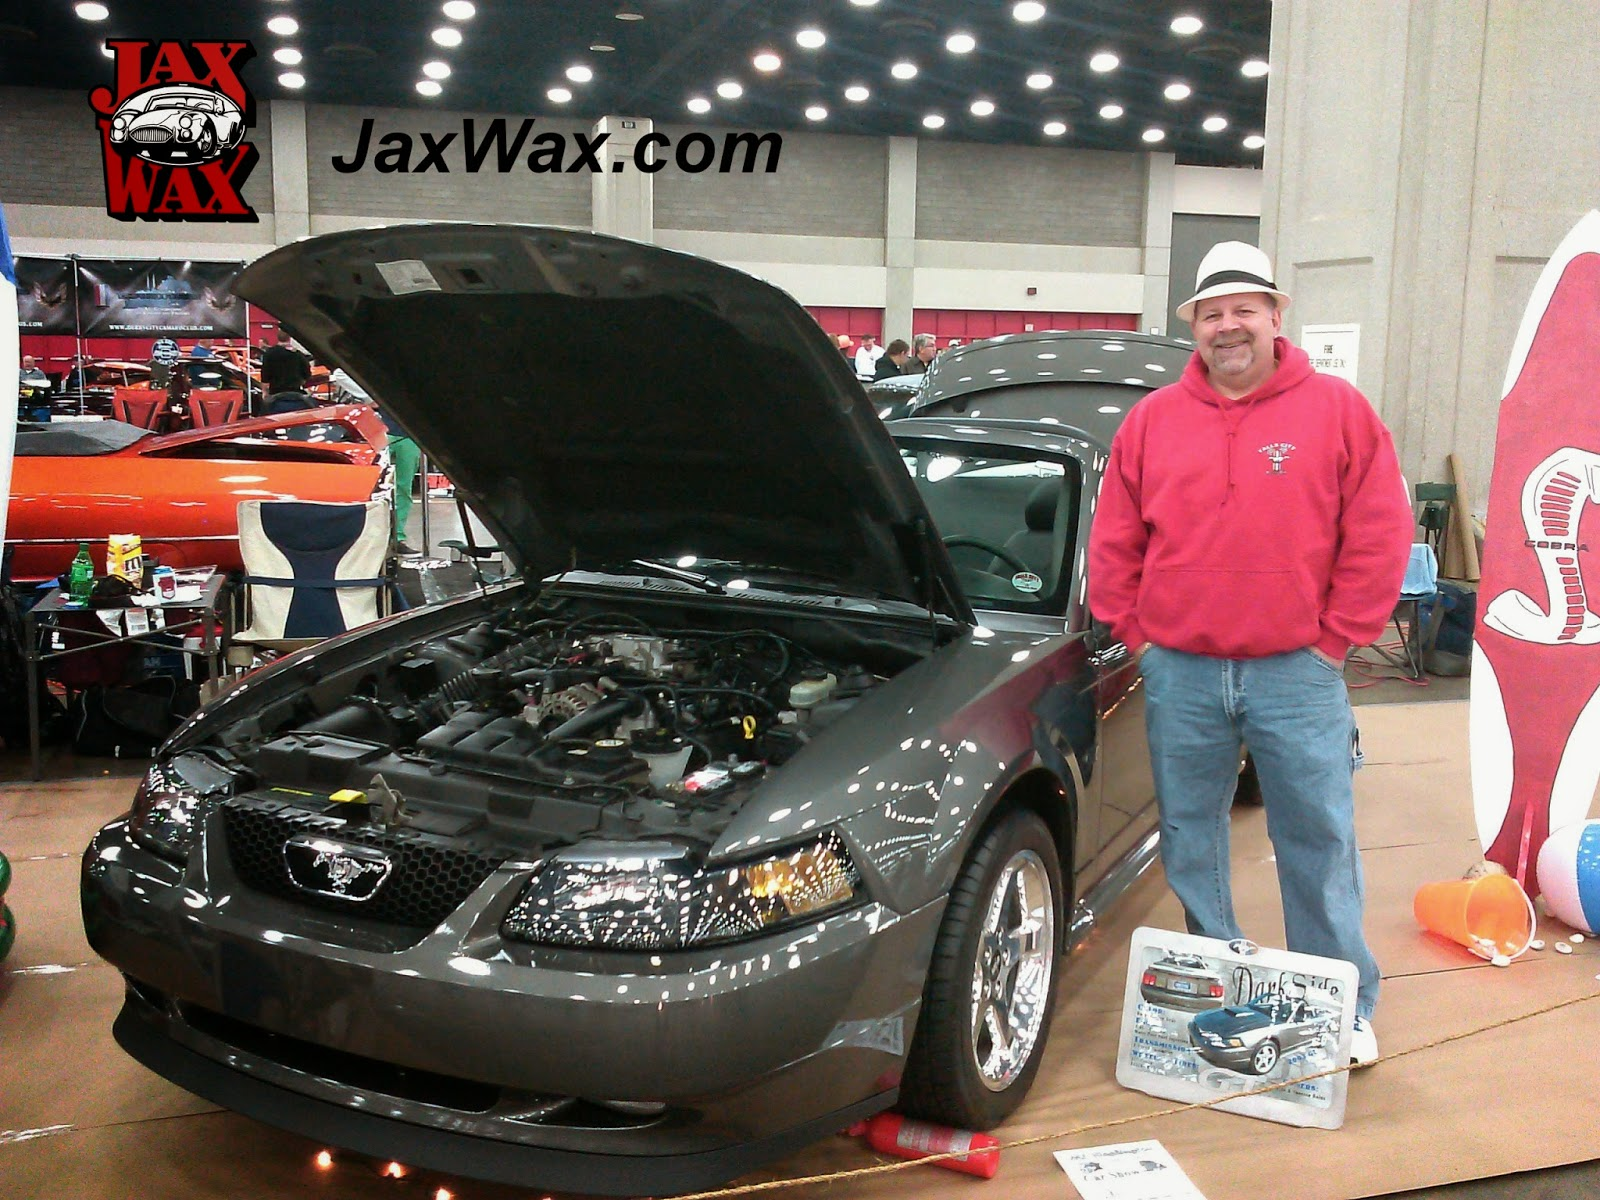 2003 Ford Mustang GT Convertible Carl Casper Auto Show Jax Wax Customer